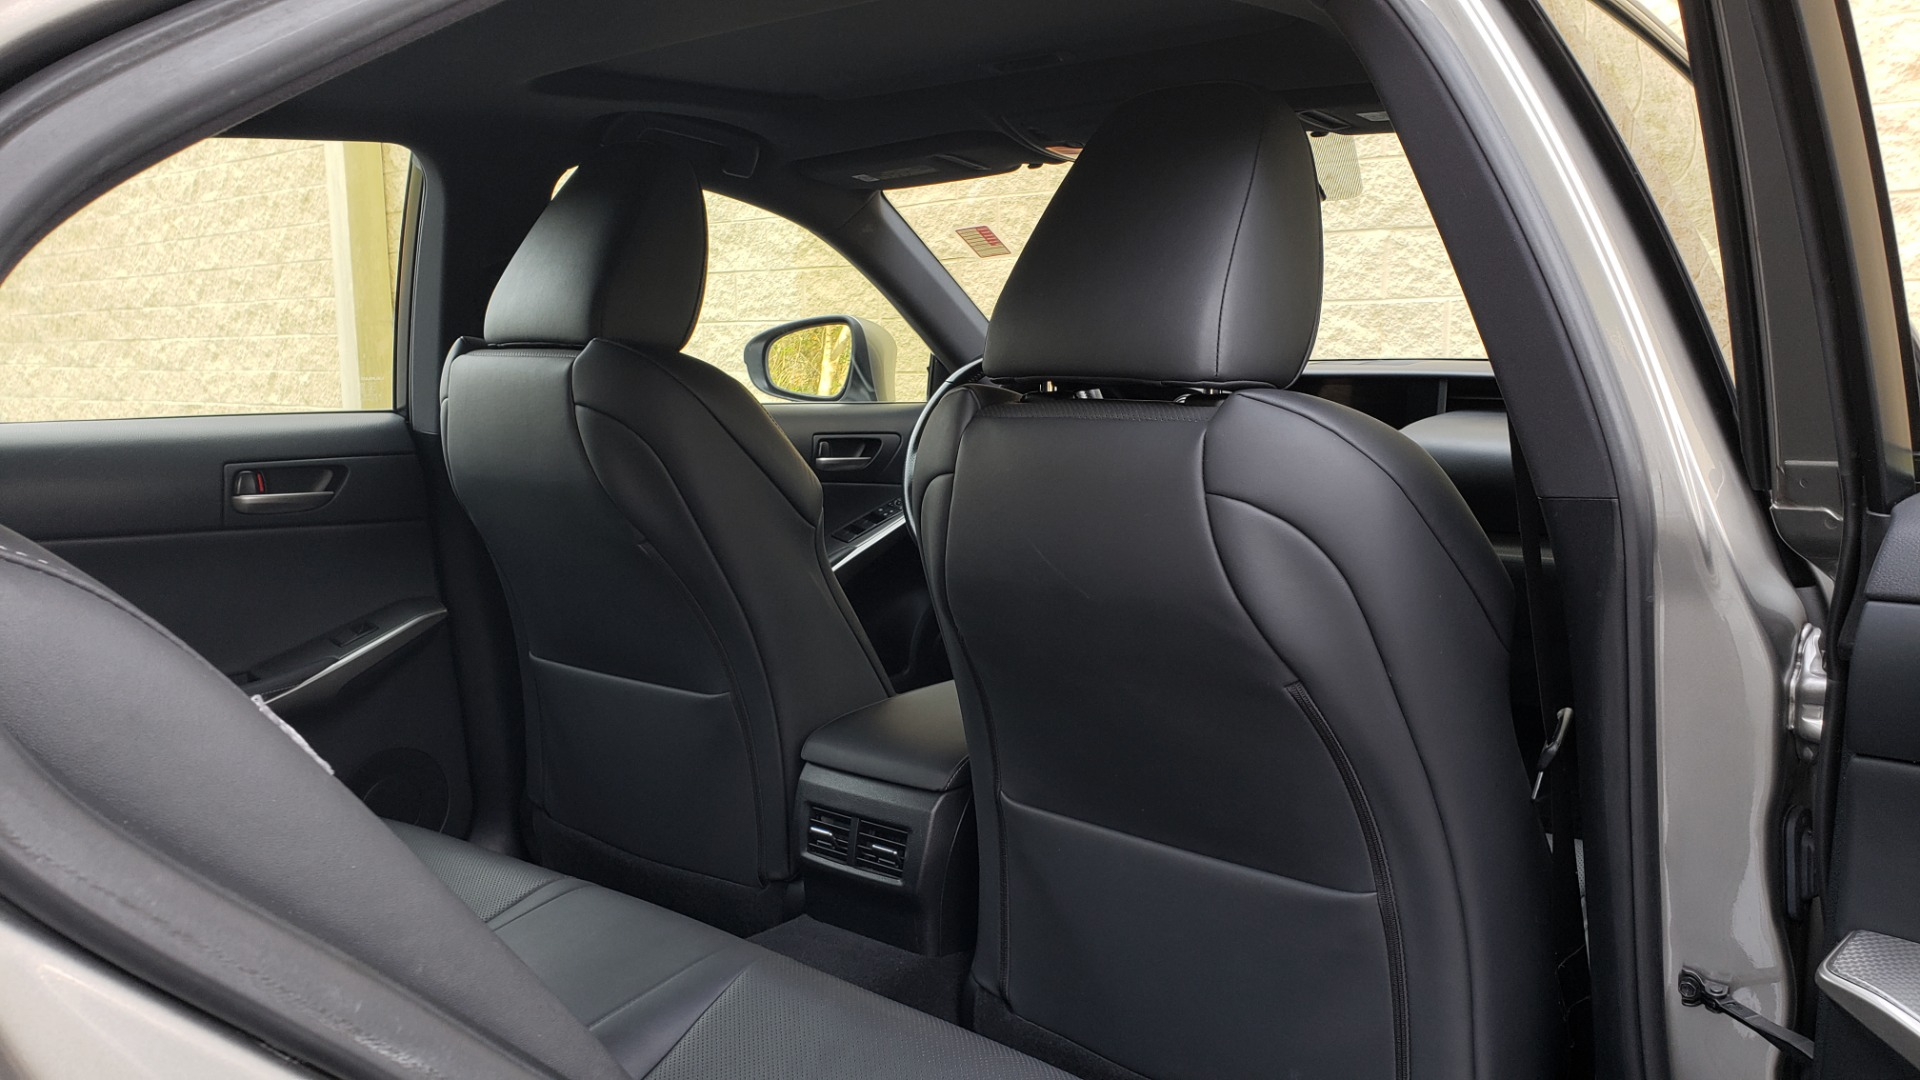 Used 2017 Lexus IS 200 TURBO F-SPORT / BSM / SUNROOF / VENT SEATS / REARVIEW for sale Sold at Formula Imports in Charlotte NC 28227 67